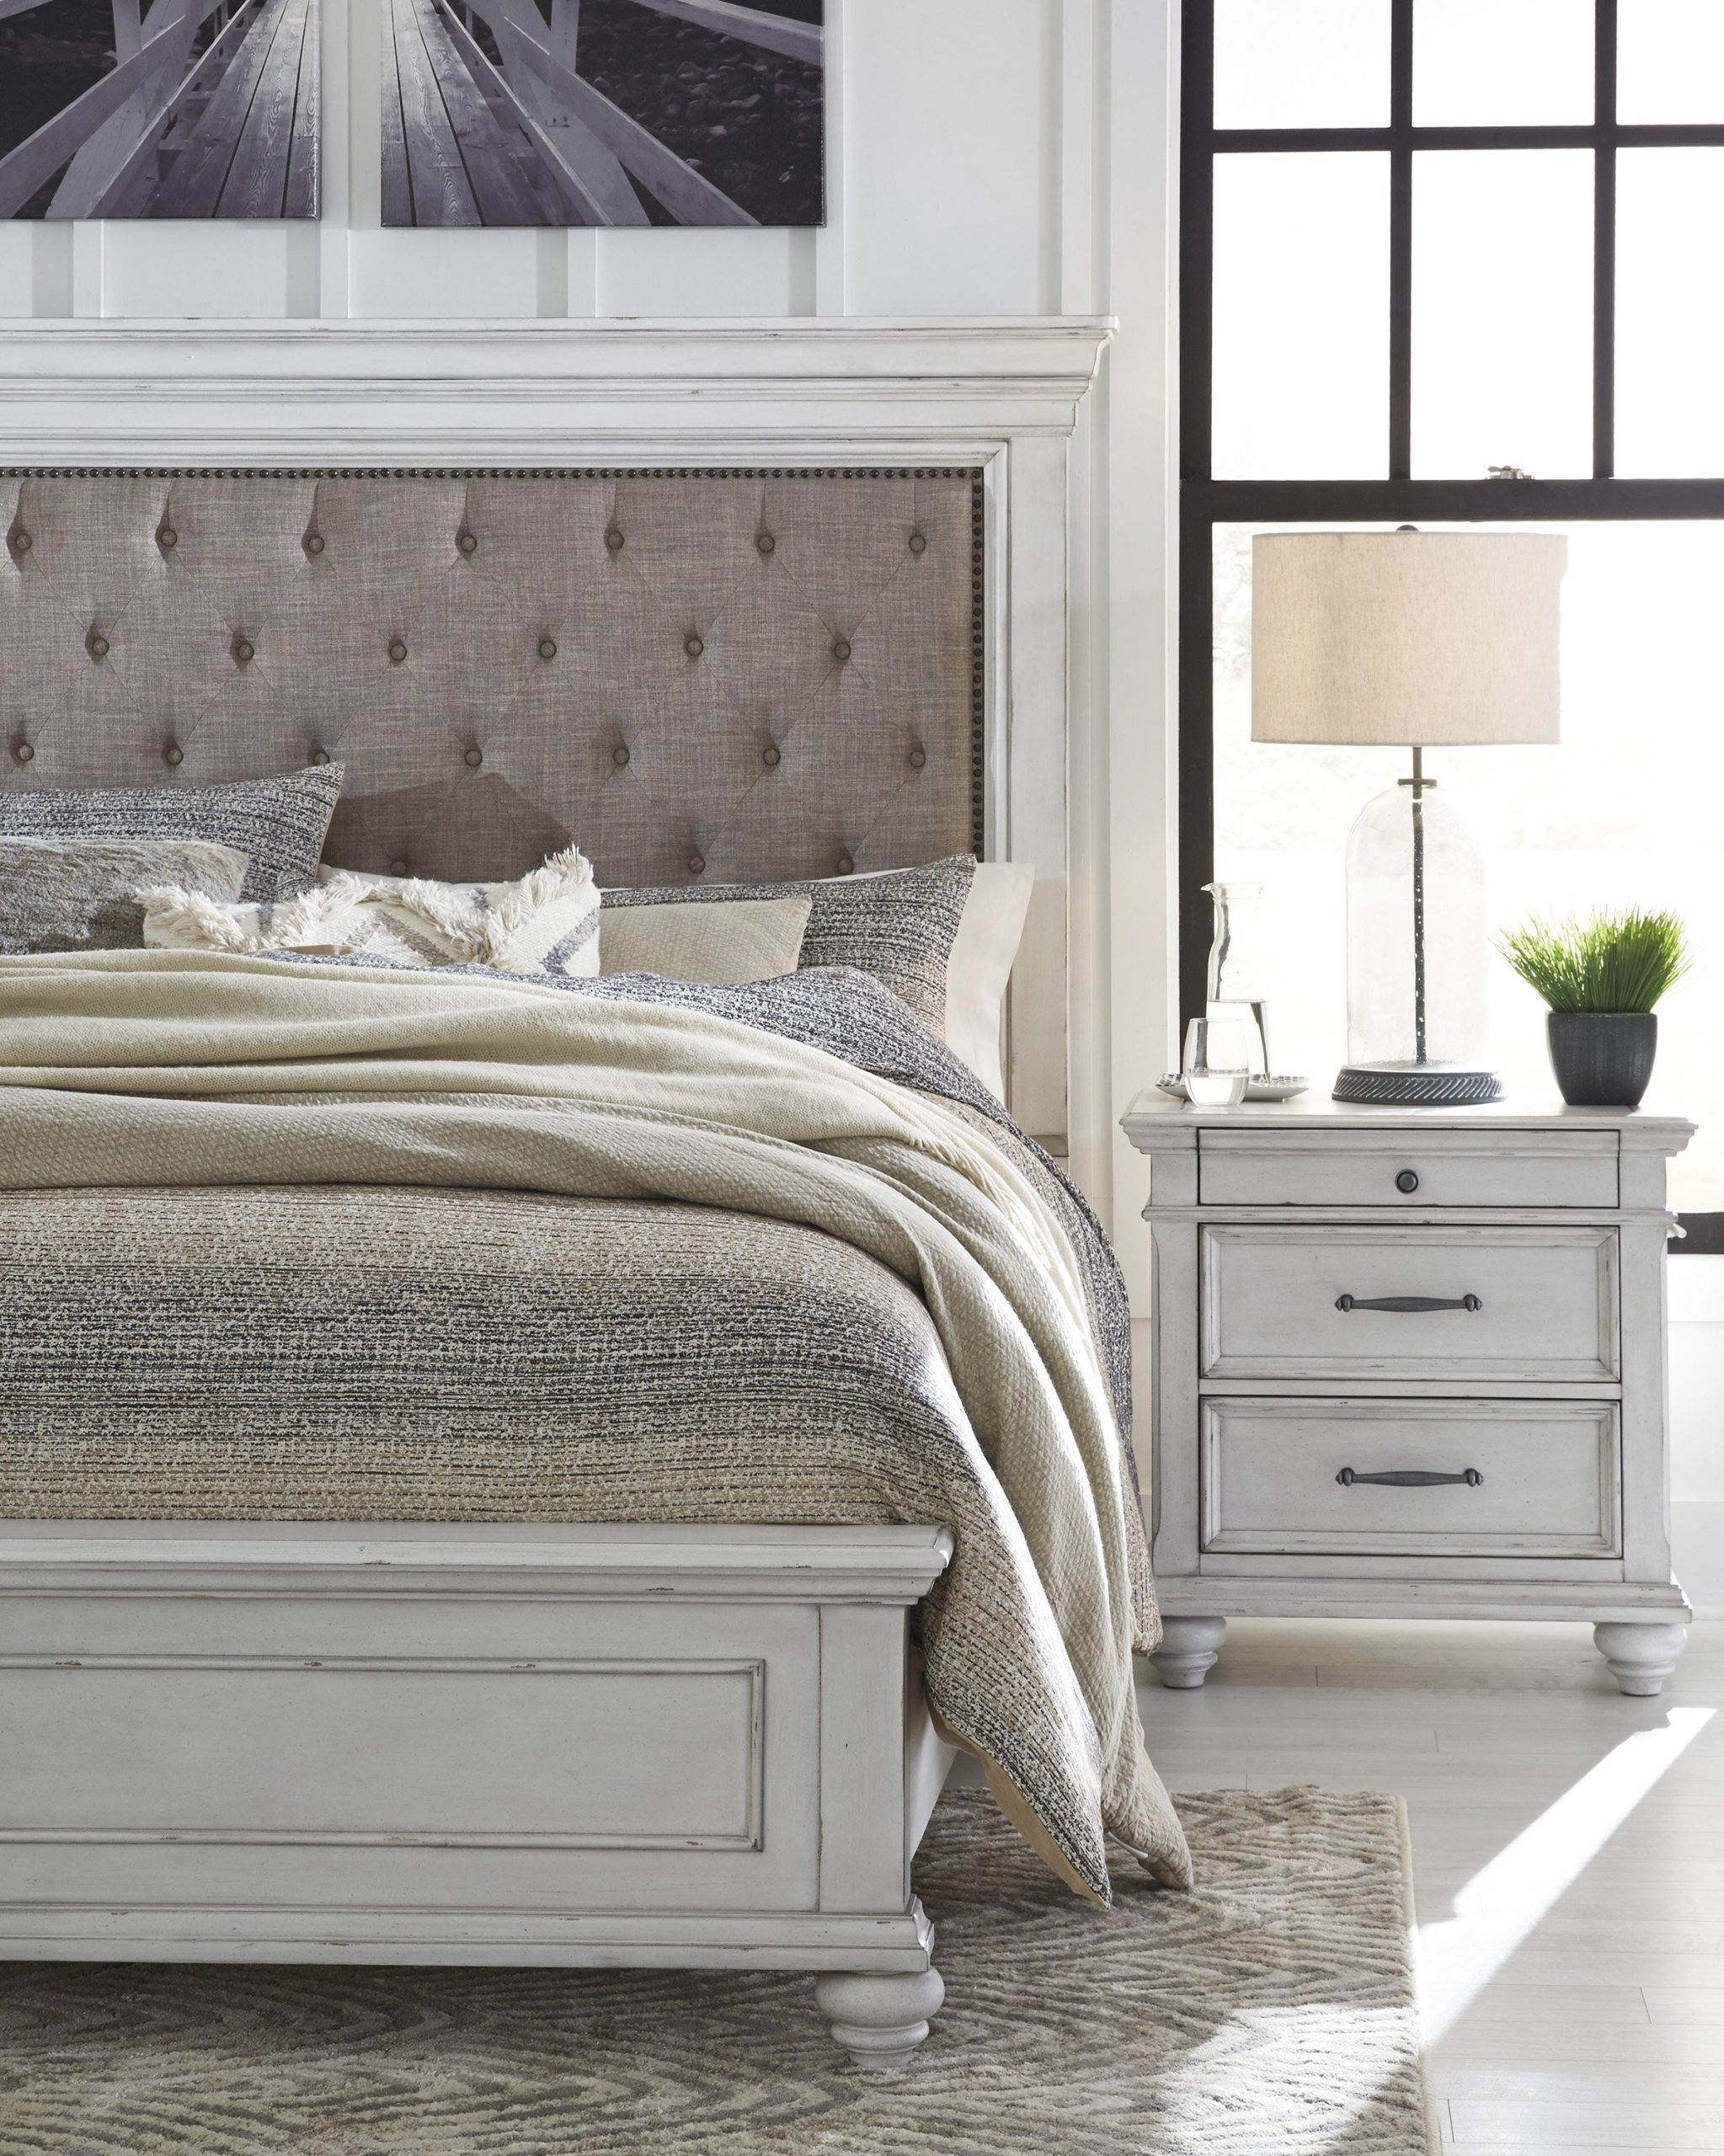 White Washed Bedroom Furniture Set Special Kanwyn Whitewash Upholstere In 2020 White Washed Bedroom Furniture Ashley Bedroom Furniture Sets Bedroom Furniture For Sale